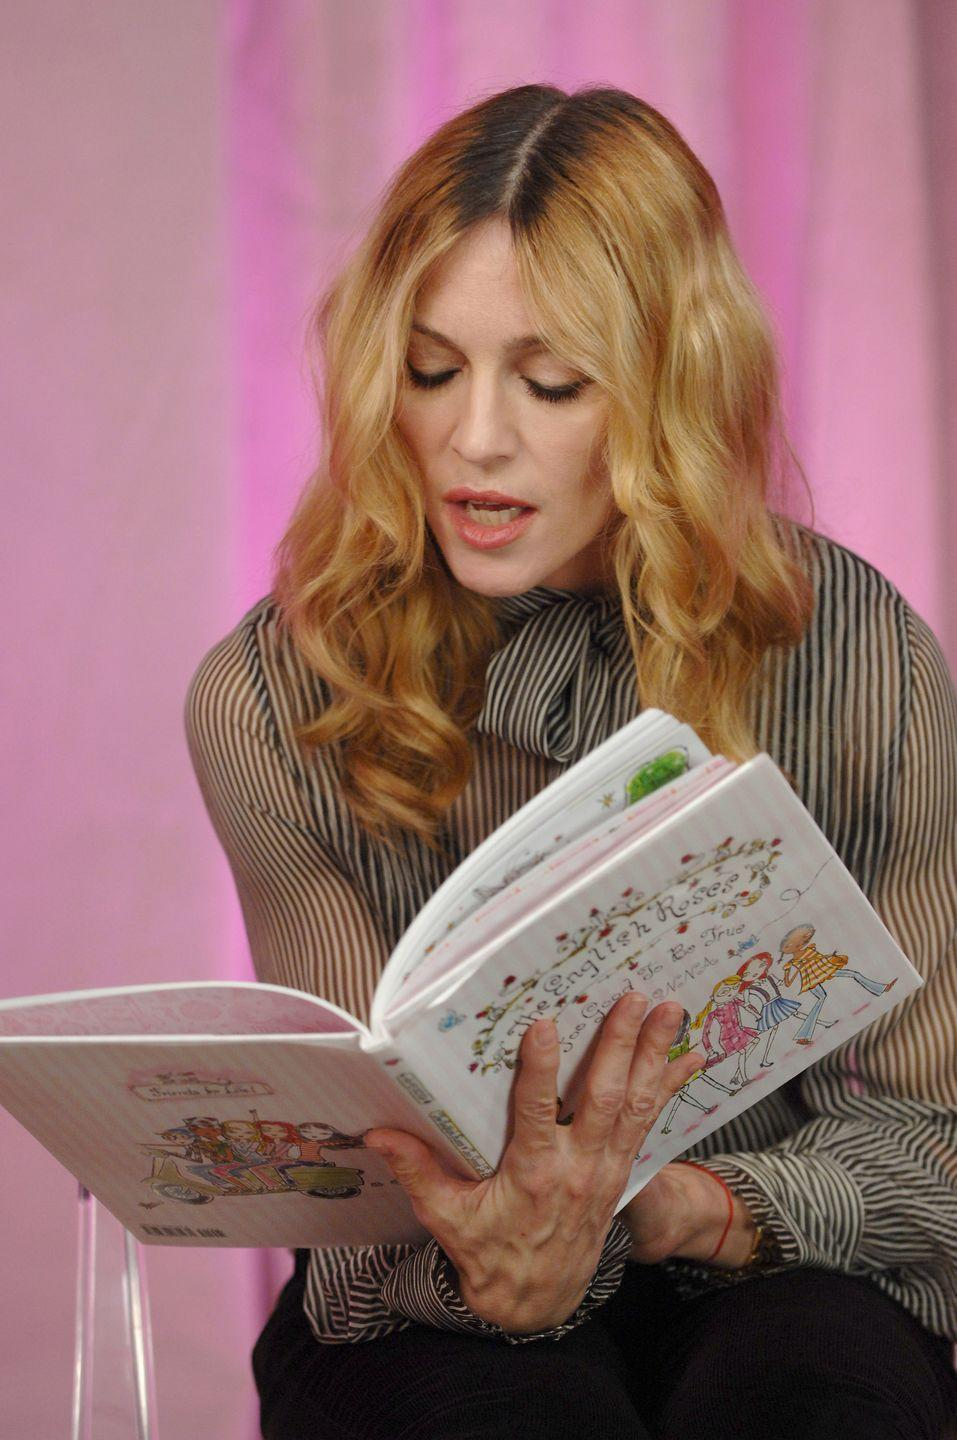 """<p>Madonna has worked on 30 books—11 coffee table books, 12 chapter books, and seven picture books for kids. In terms of her writing career, the Grammy and Academy Award winner is probably best known for her <em>English Roses</em> series, the first of which was published in 2003. </p><p>The books follow the friendship of five girls, and the ups and downs that come with it, and are named after group of friends Madonna's daughter plays with at school, she told <em><a href=""""https://www.publishersweekly.com/pw/by-topic/authors/interviews/article/33935-mum-s-the-word-pw-talks-with-madonna.html"""" rel=""""nofollow noopener"""" target=""""_blank"""" data-ylk=""""slk:Publishers Weekly"""" class=""""link rapid-noclick-resp"""">Publishers Weekly</a></em>. The idea for the series was planted by the Queen of Pop's Kabbalah teacher, who suggested she write children's books to """"share the wisdom you've gained as an adult."""" The first book in the series debuted at number one on the <em><a href=""""https://sanoma.com/release/madonnas-book-the-english-roses-debuts-at-no-1-on-the-new-york-times-childrens-best-seller-list/"""" rel=""""nofollow noopener"""" target=""""_blank"""" data-ylk=""""slk:New York Times"""" class=""""link rapid-noclick-resp"""">New York Times</a></em> children's bestsellers list. <br></p><p><a class=""""link rapid-noclick-resp"""" href=""""https://www.amazon.com/English-Roses-Madonna/dp/0670036781?tag=syn-yahoo-20&ascsubtag=%5Bartid%7C2140.g.33987725%5Bsrc%7Cyahoo-us"""" rel=""""nofollow noopener"""" target=""""_blank"""" data-ylk=""""slk:Buy the Book"""">Buy the Book</a></p>"""